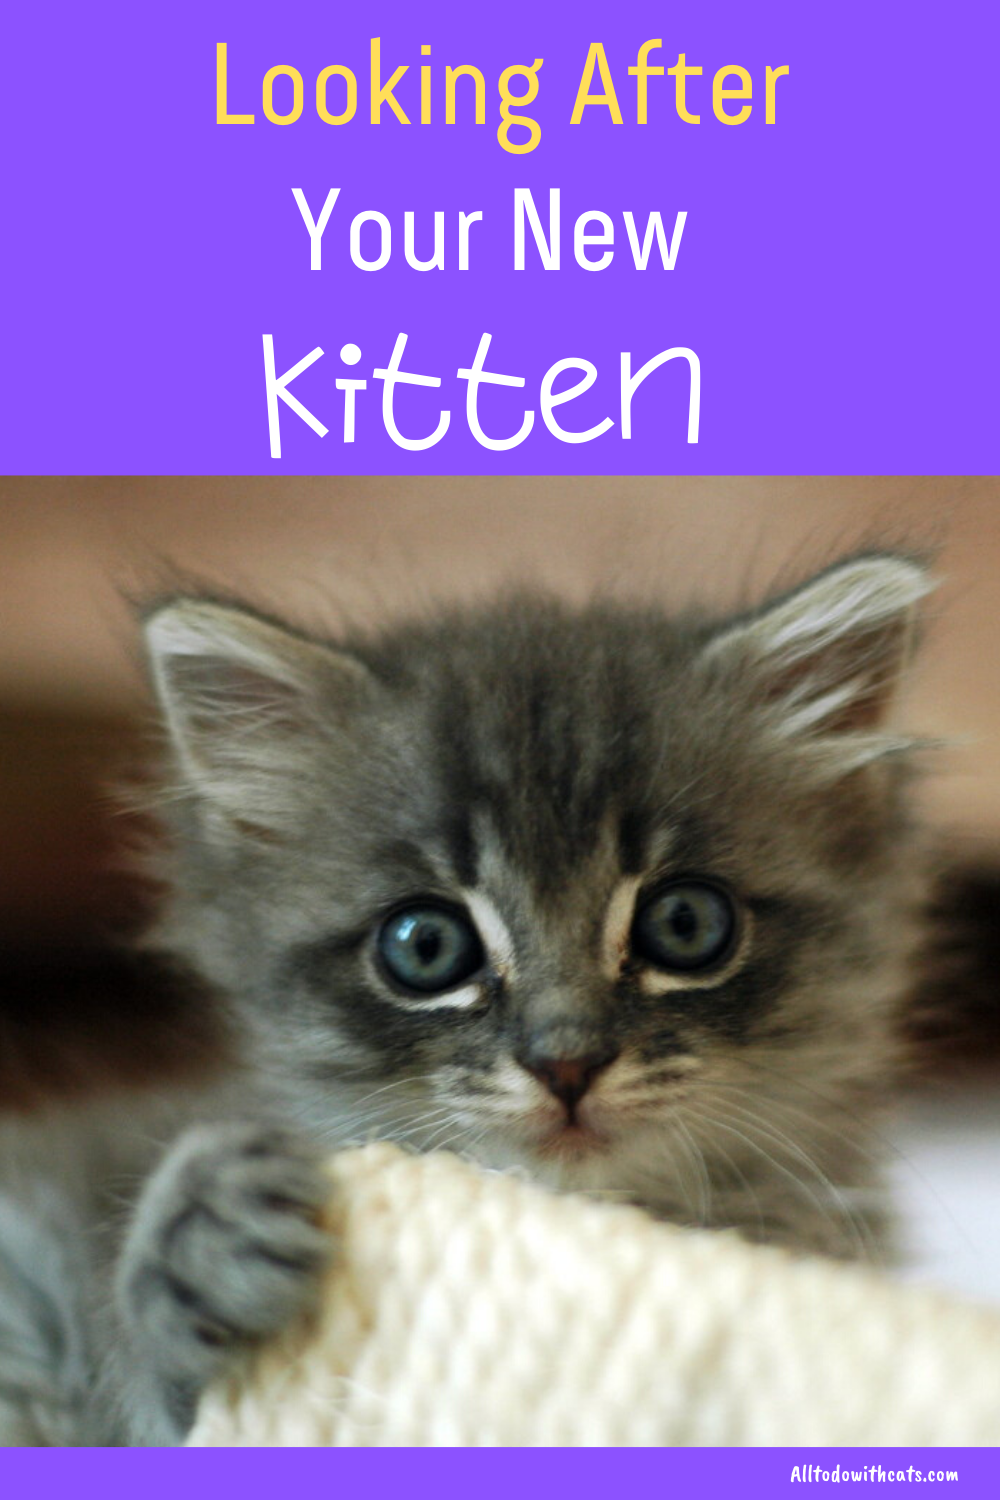 How To Care For A Kitten From Newborn Up To The First Few Months In 2020 Kitten Care Pet Care Cats Getting A Kitten